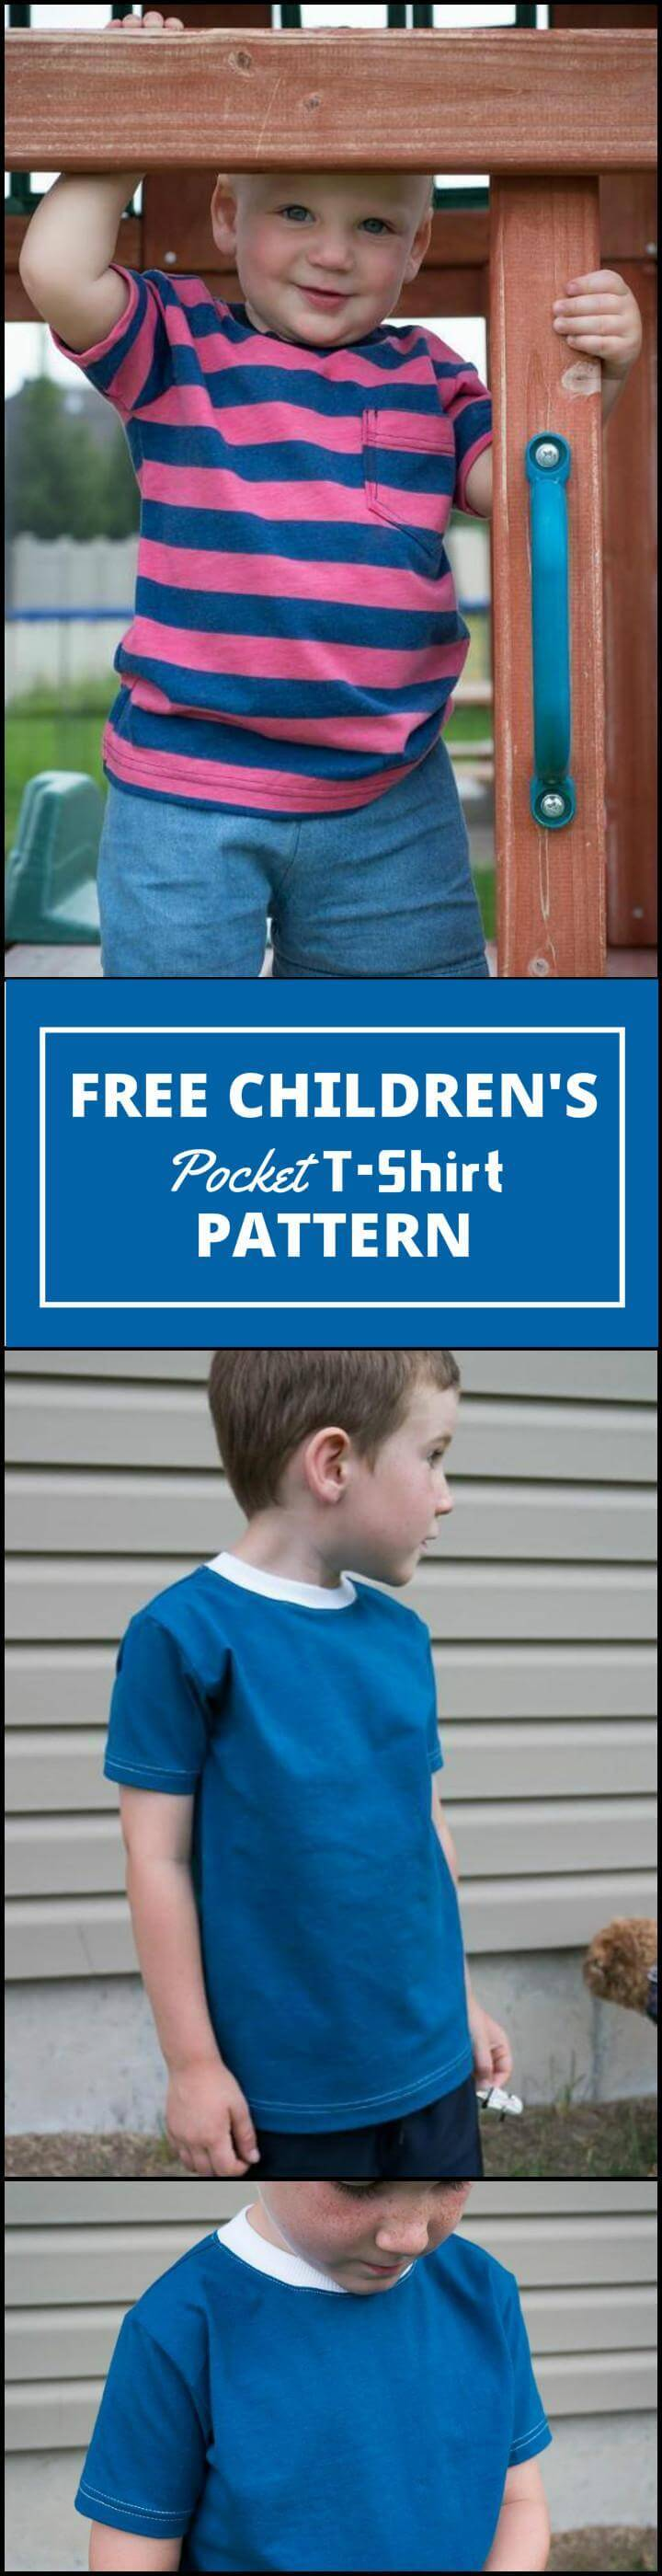 free children's pocket t-shirt pattern